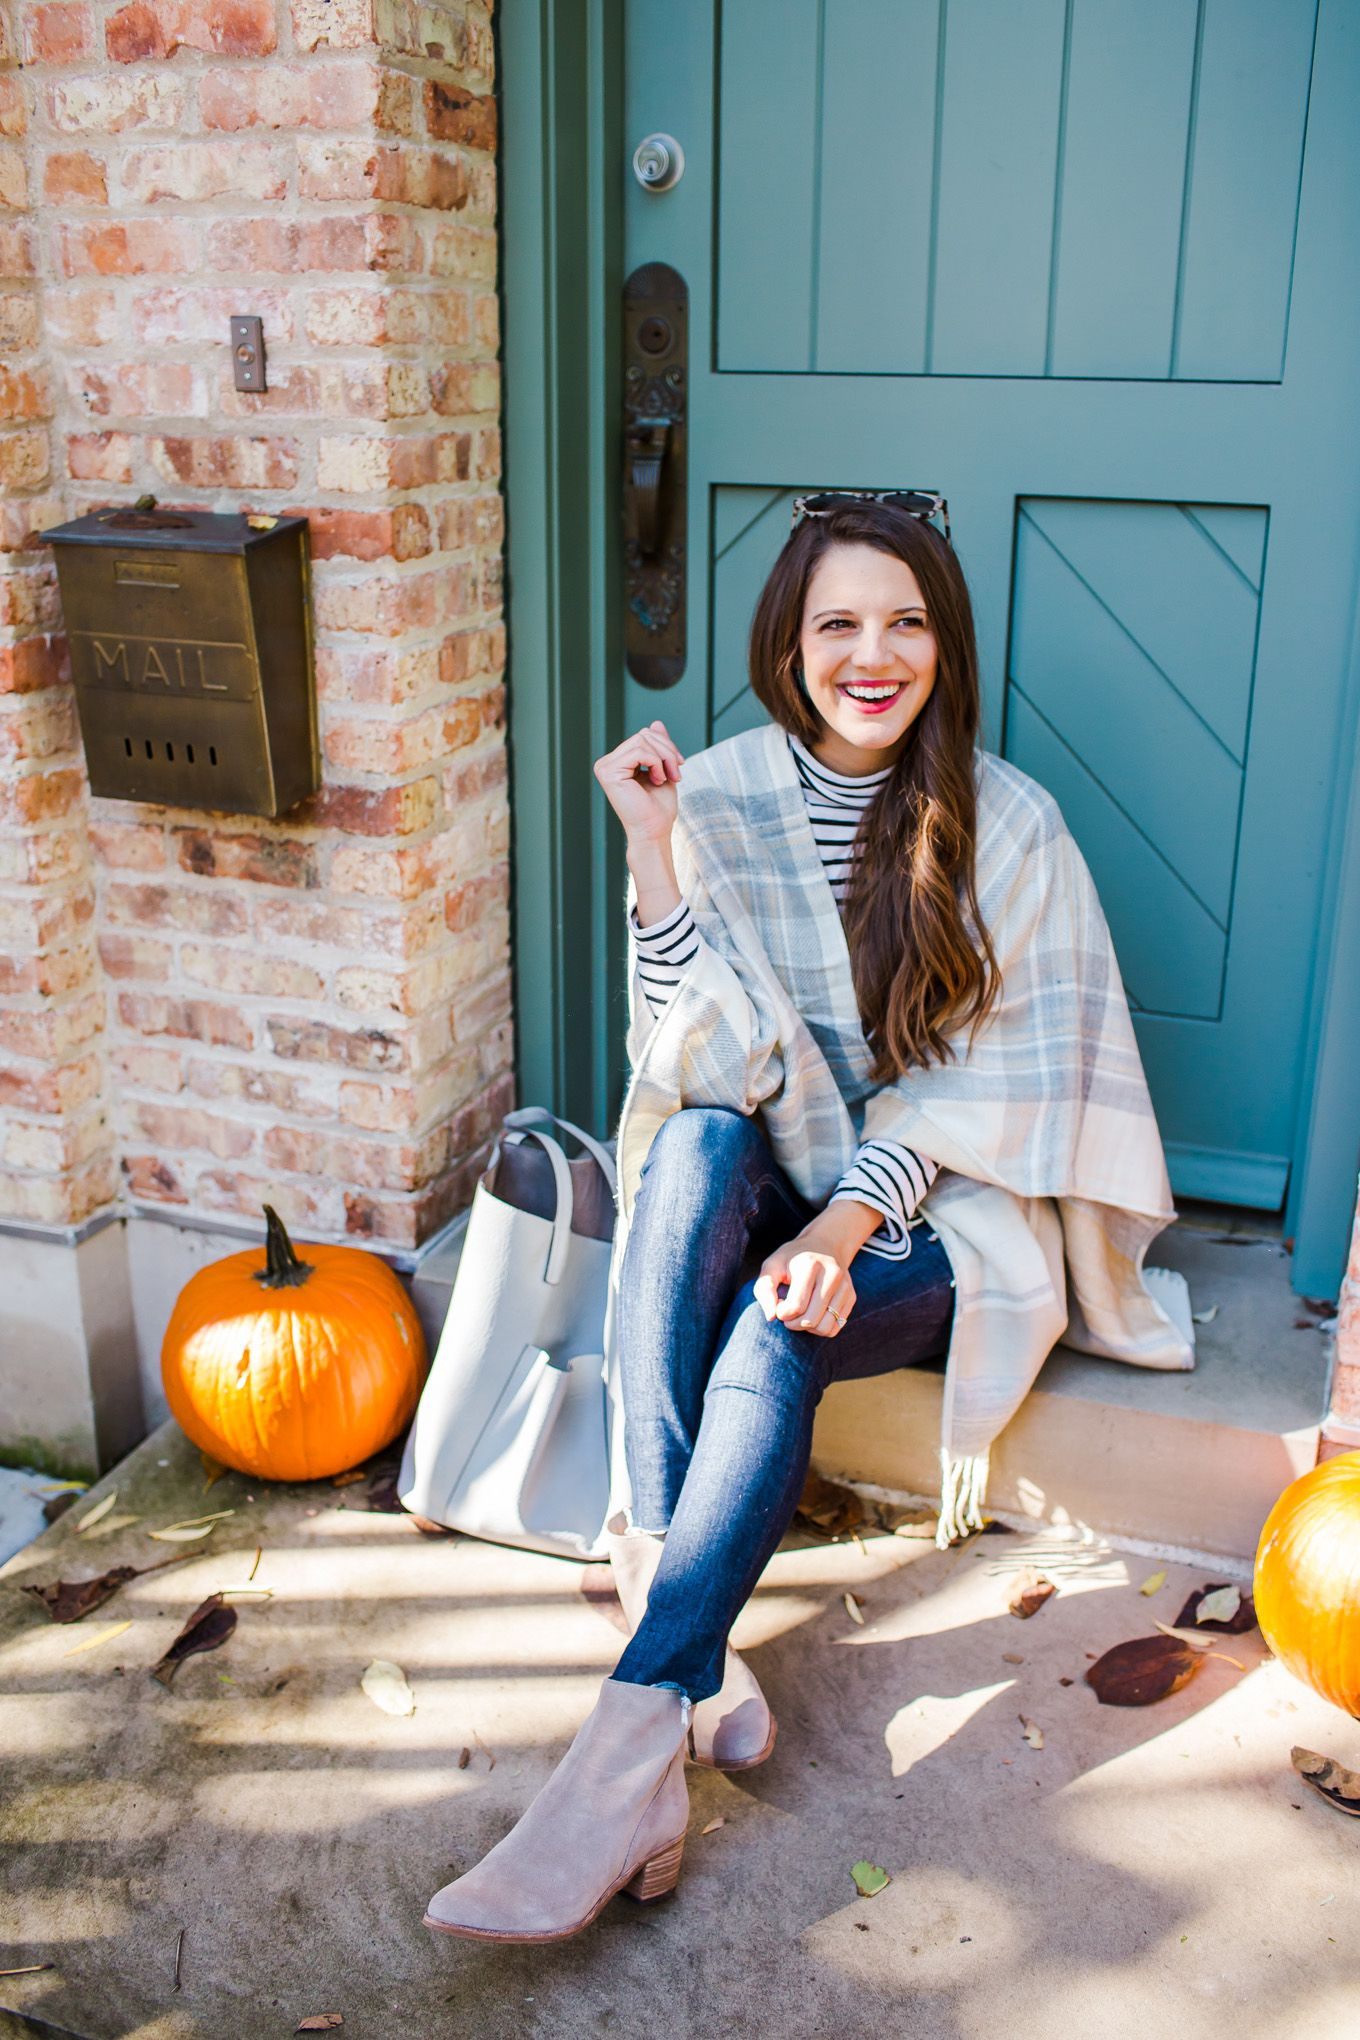 d1e3063d6f396 7 Casual Thanksgiving Outfit Ideas. What to wear on Thanksgiving. These  outfits are perfect for a more casual Thanksgiving Day look #thanksgiving